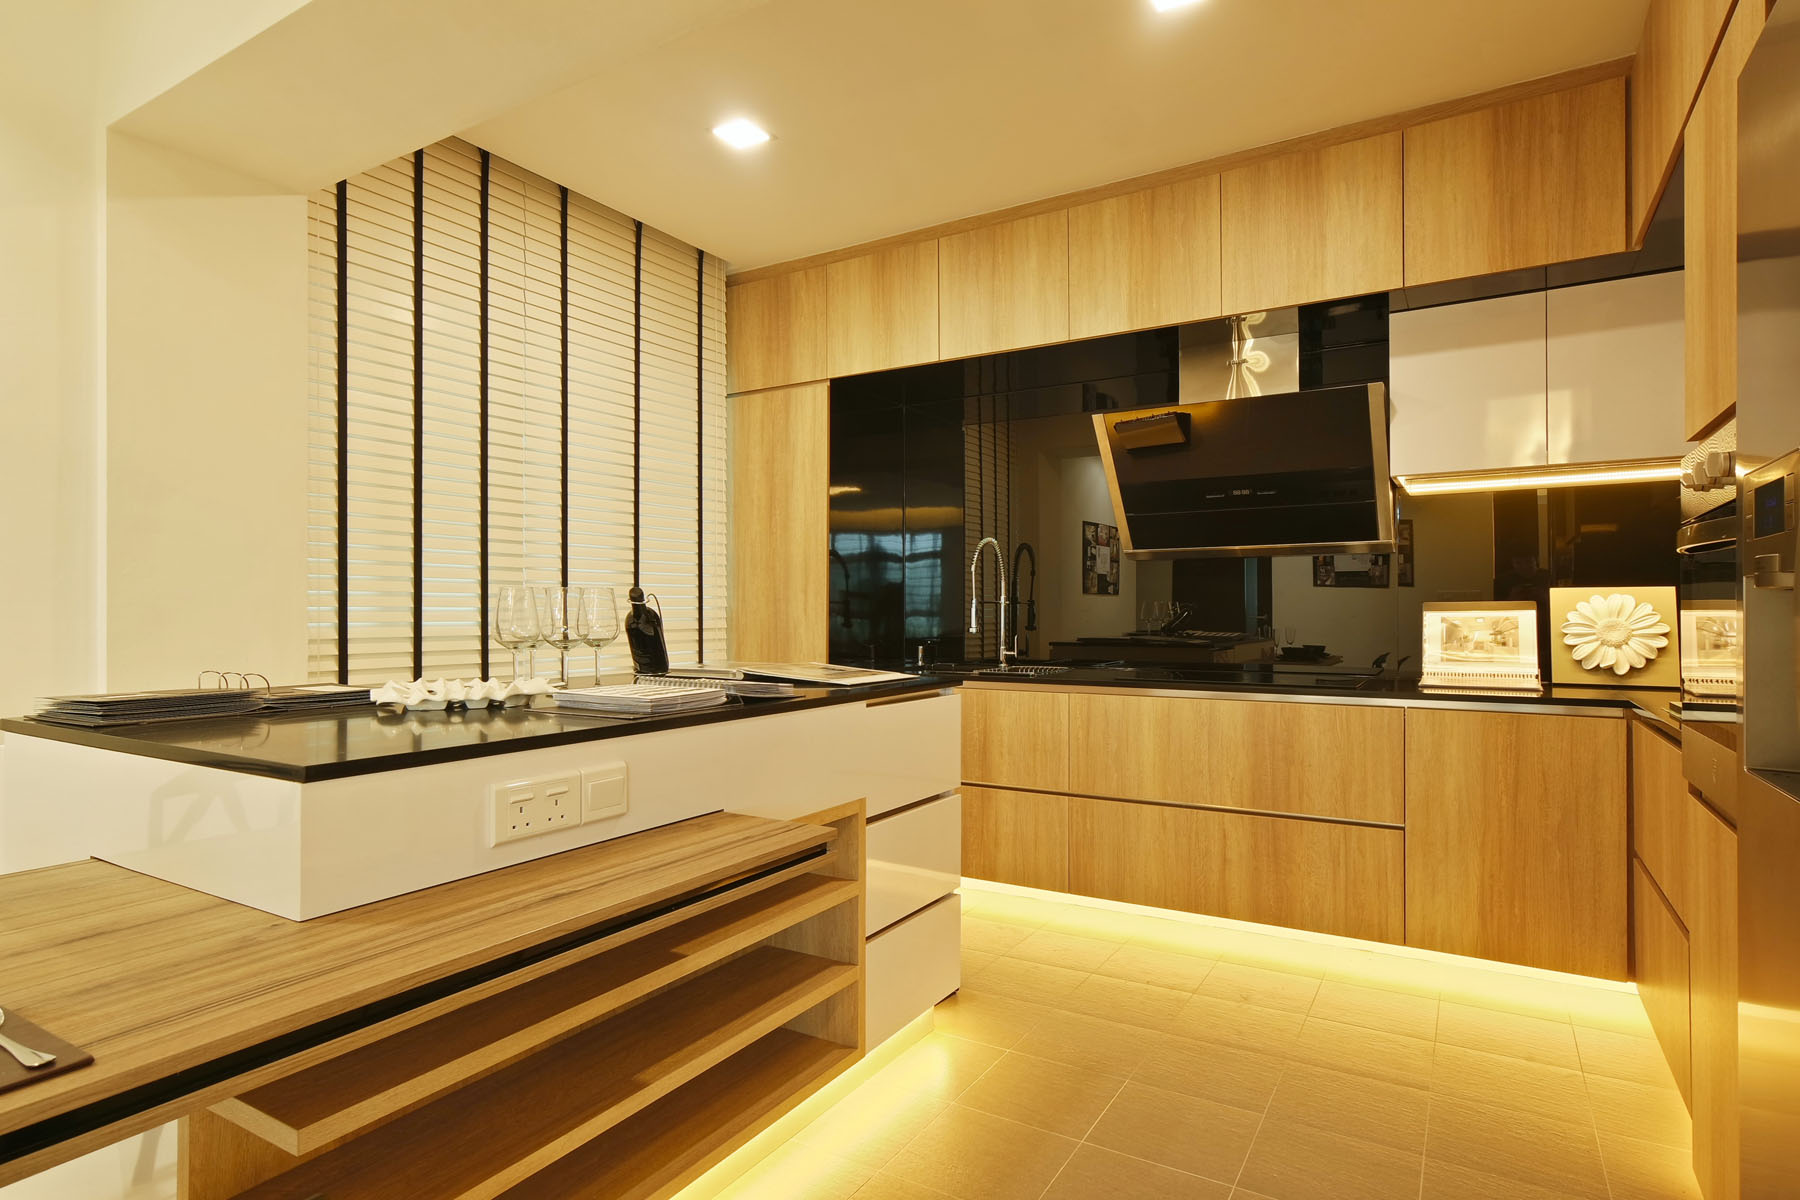 Kitchen Interior Design And Renovation Singapore